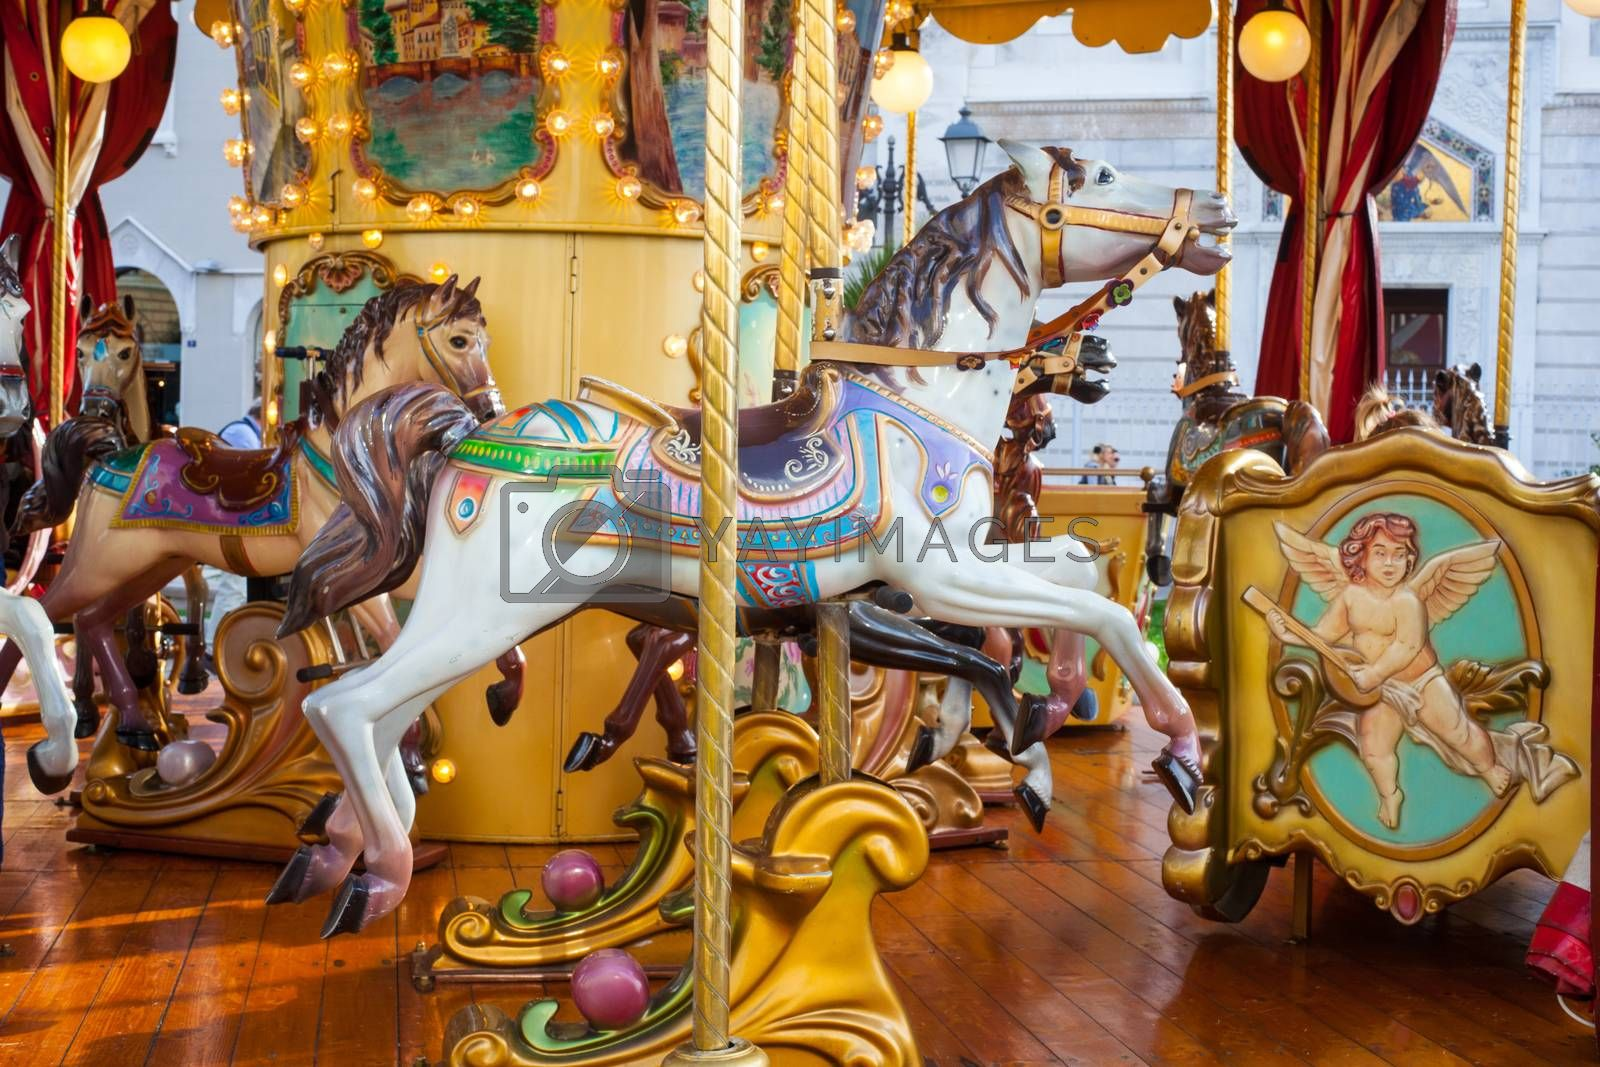 View of horses in the carousel in Trieste